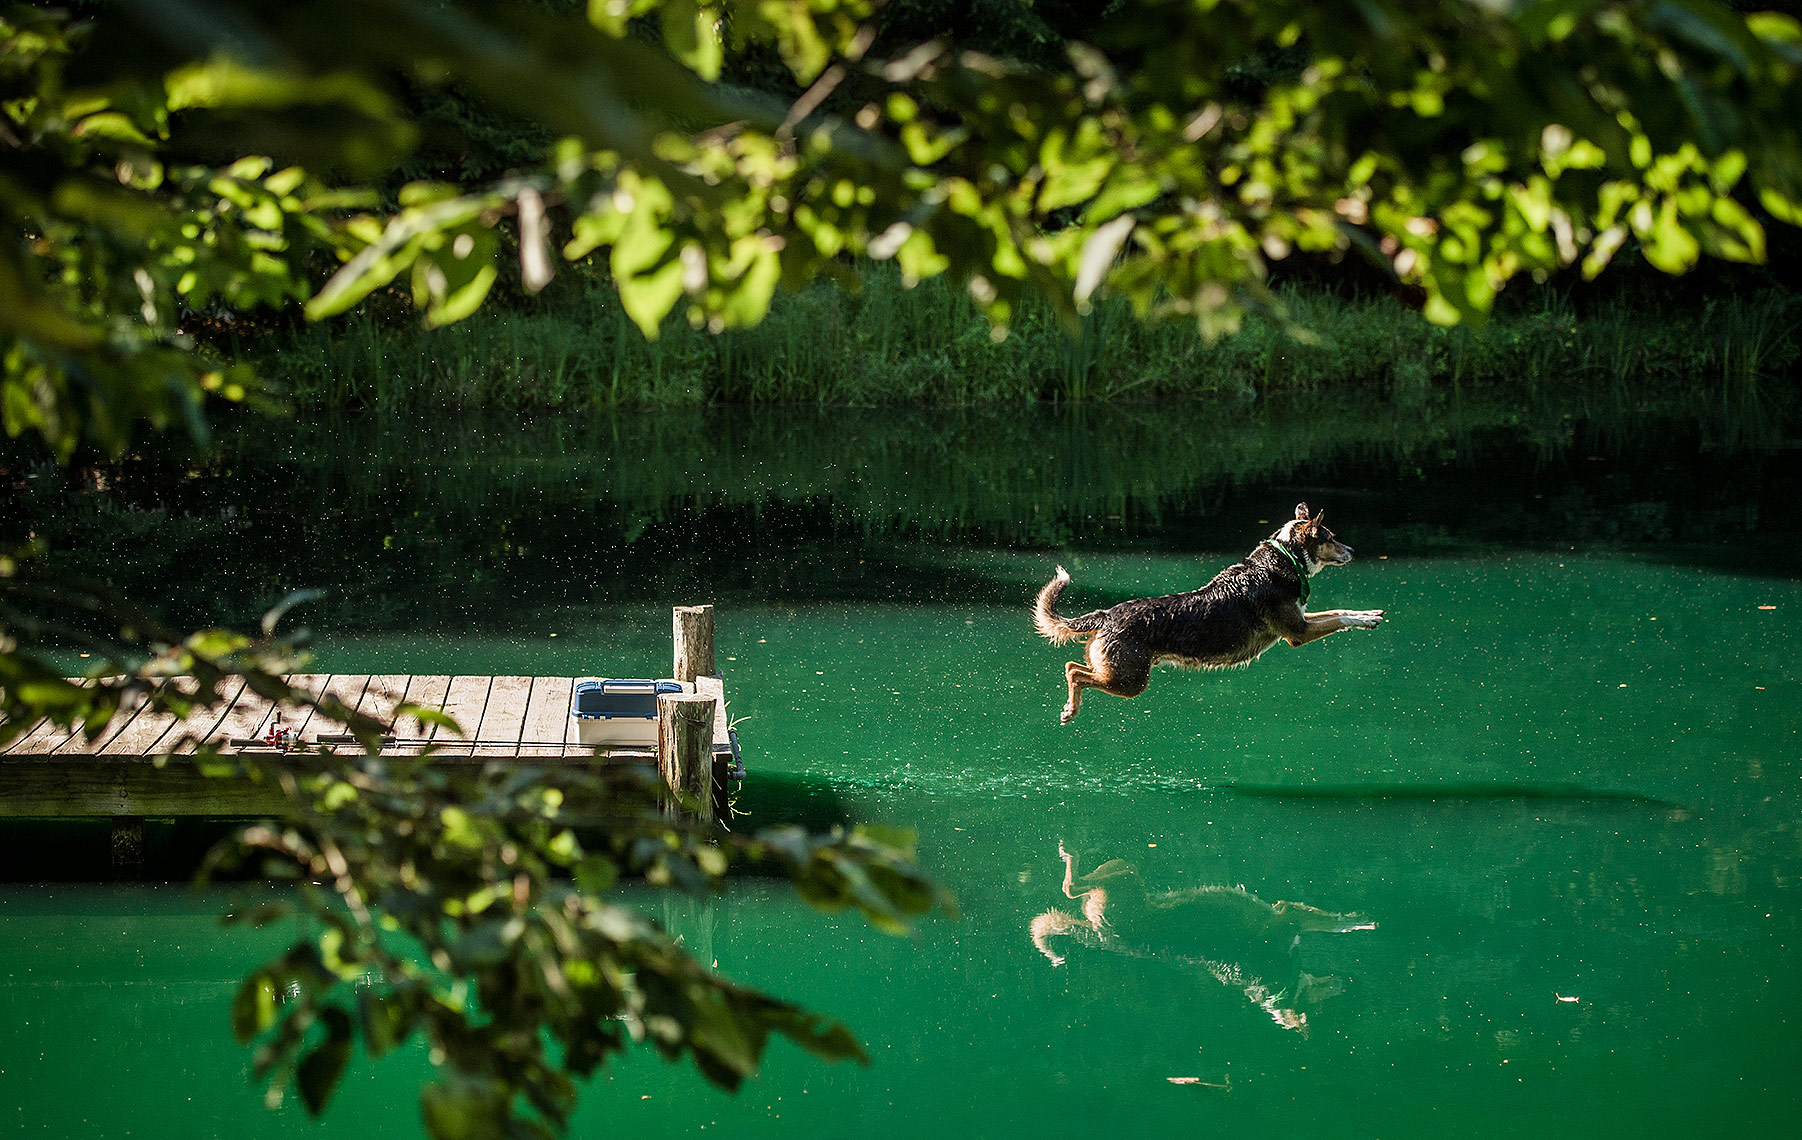 Dog Jumping off Dock